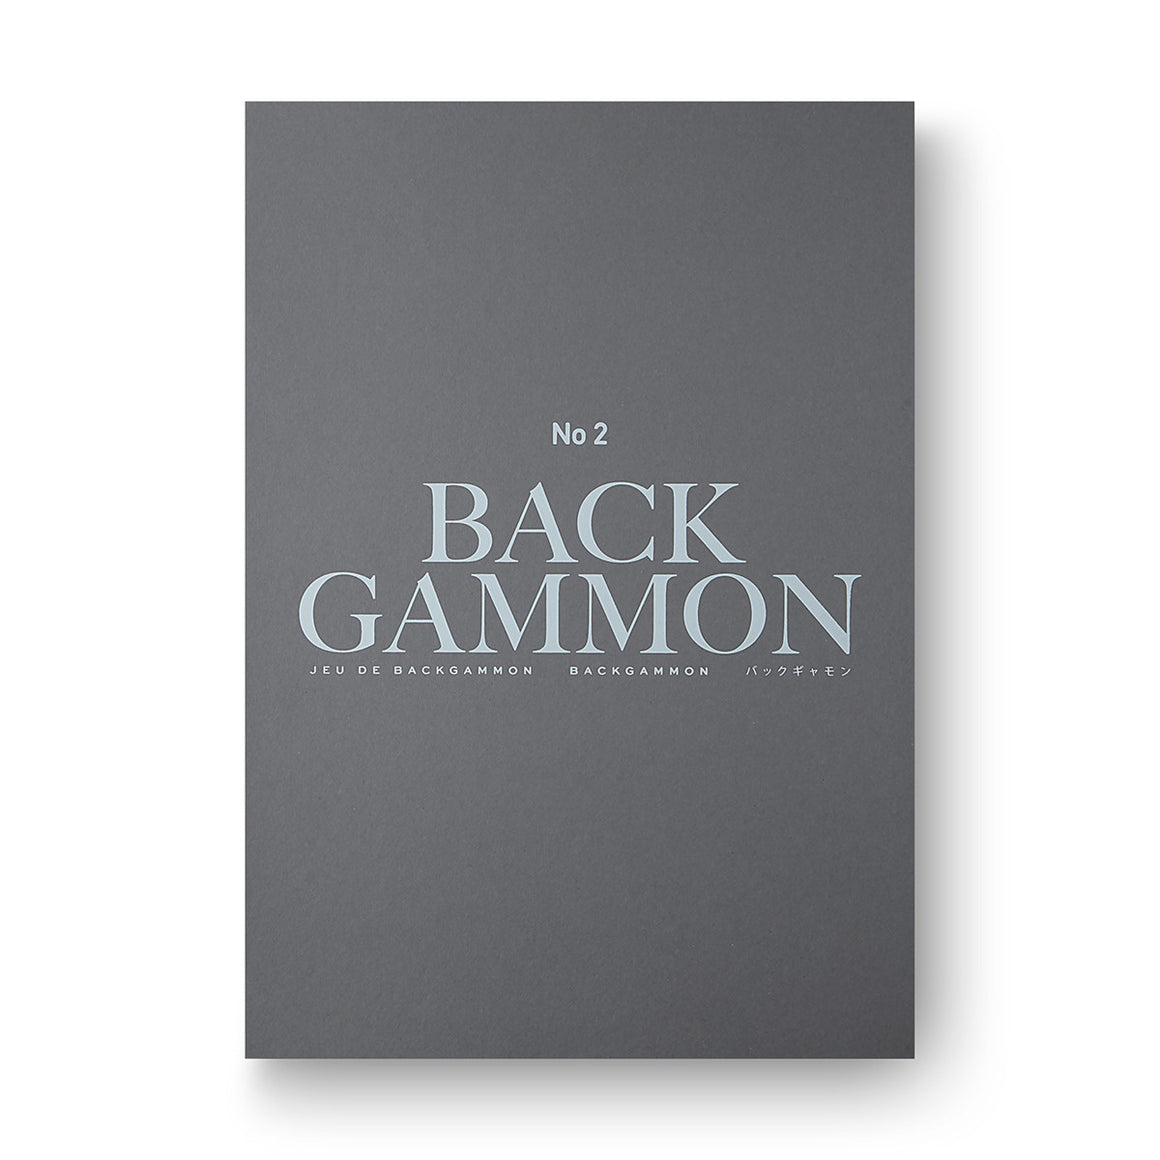 Image featuring a white background with a simplistic grey packaging box with the words No. 2 Back Gammon on the front